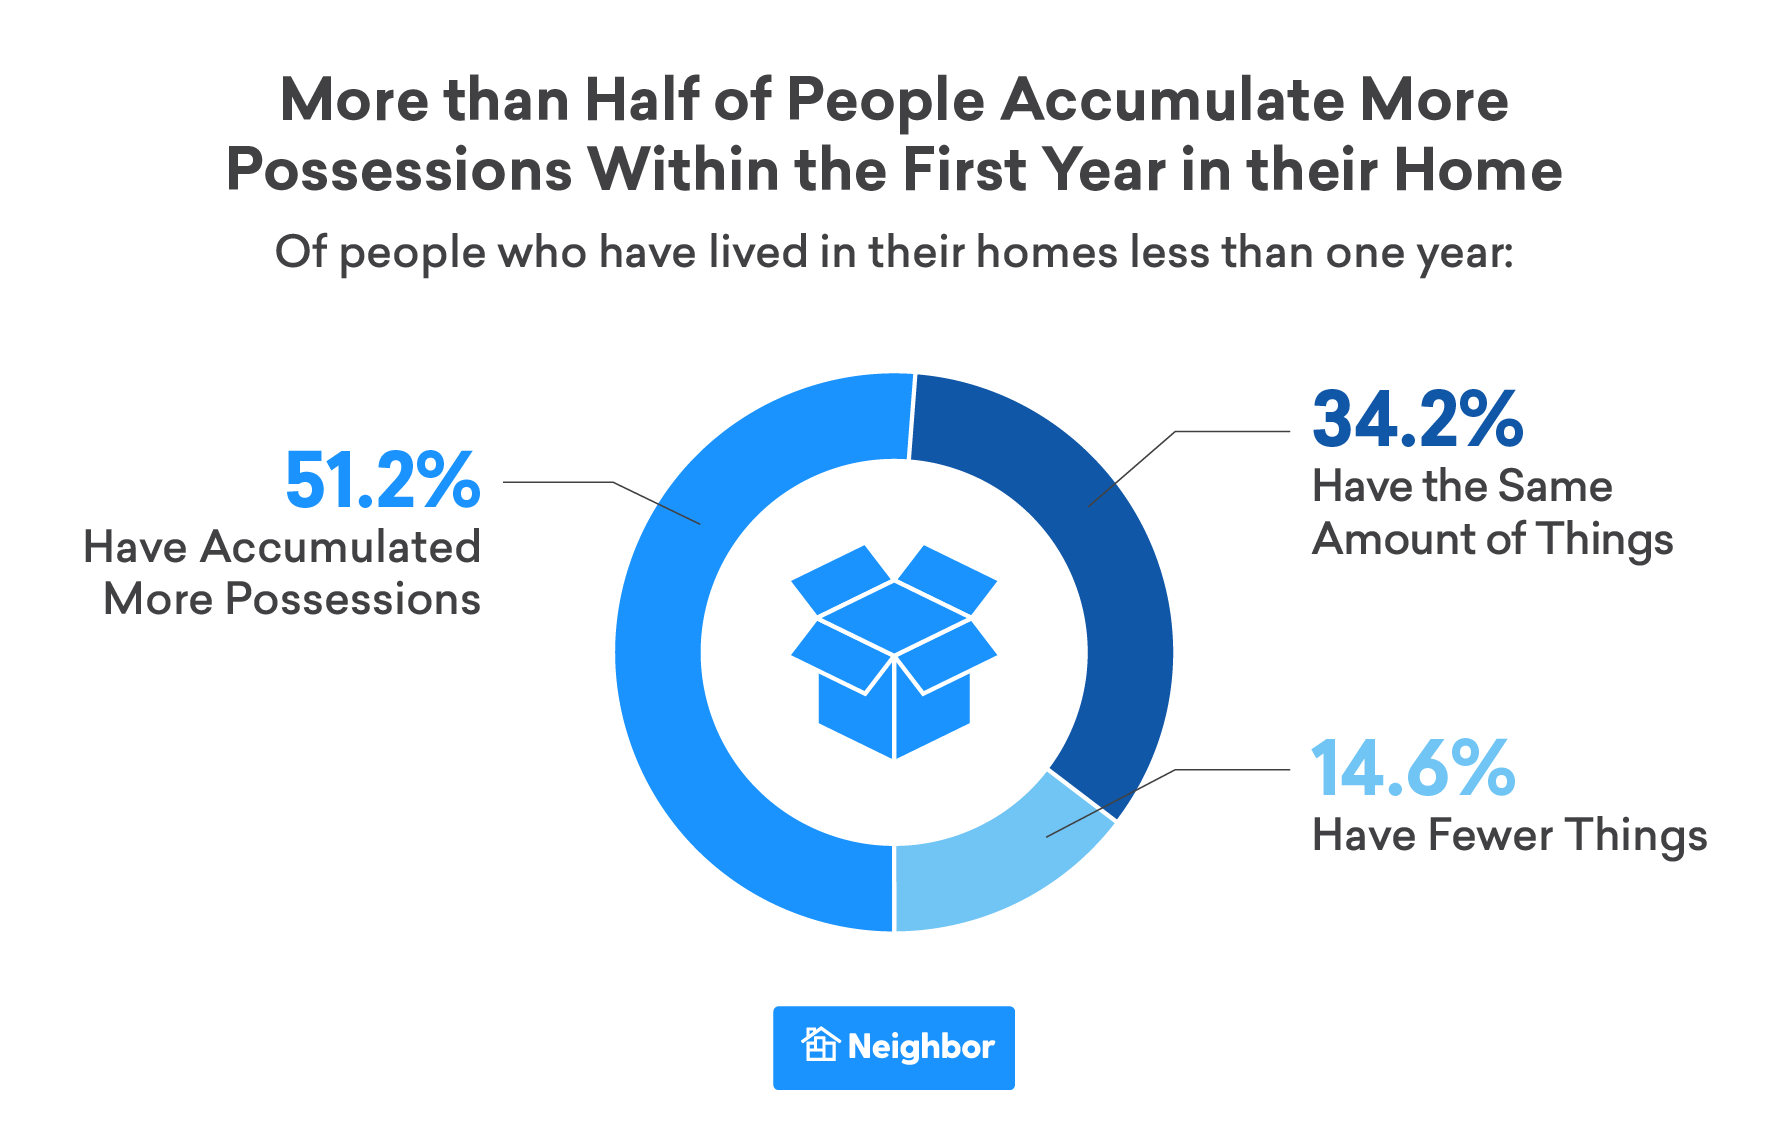 More than Half of People Start Accumulating More Possessions Right Away